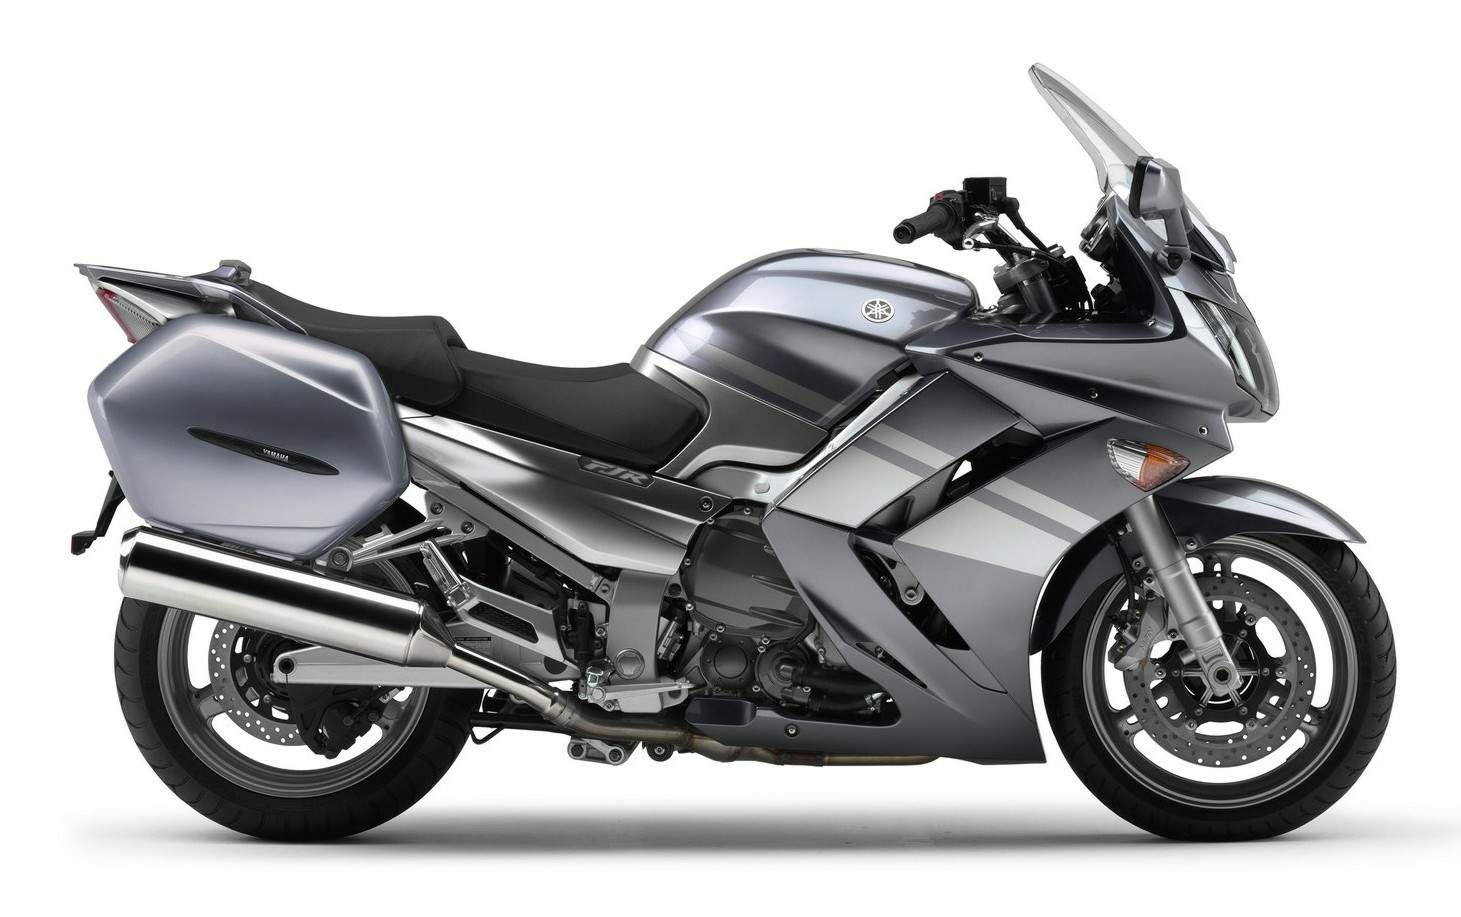 yamaha fjr 1300 specs 2007 2008 autoevolution. Black Bedroom Furniture Sets. Home Design Ideas